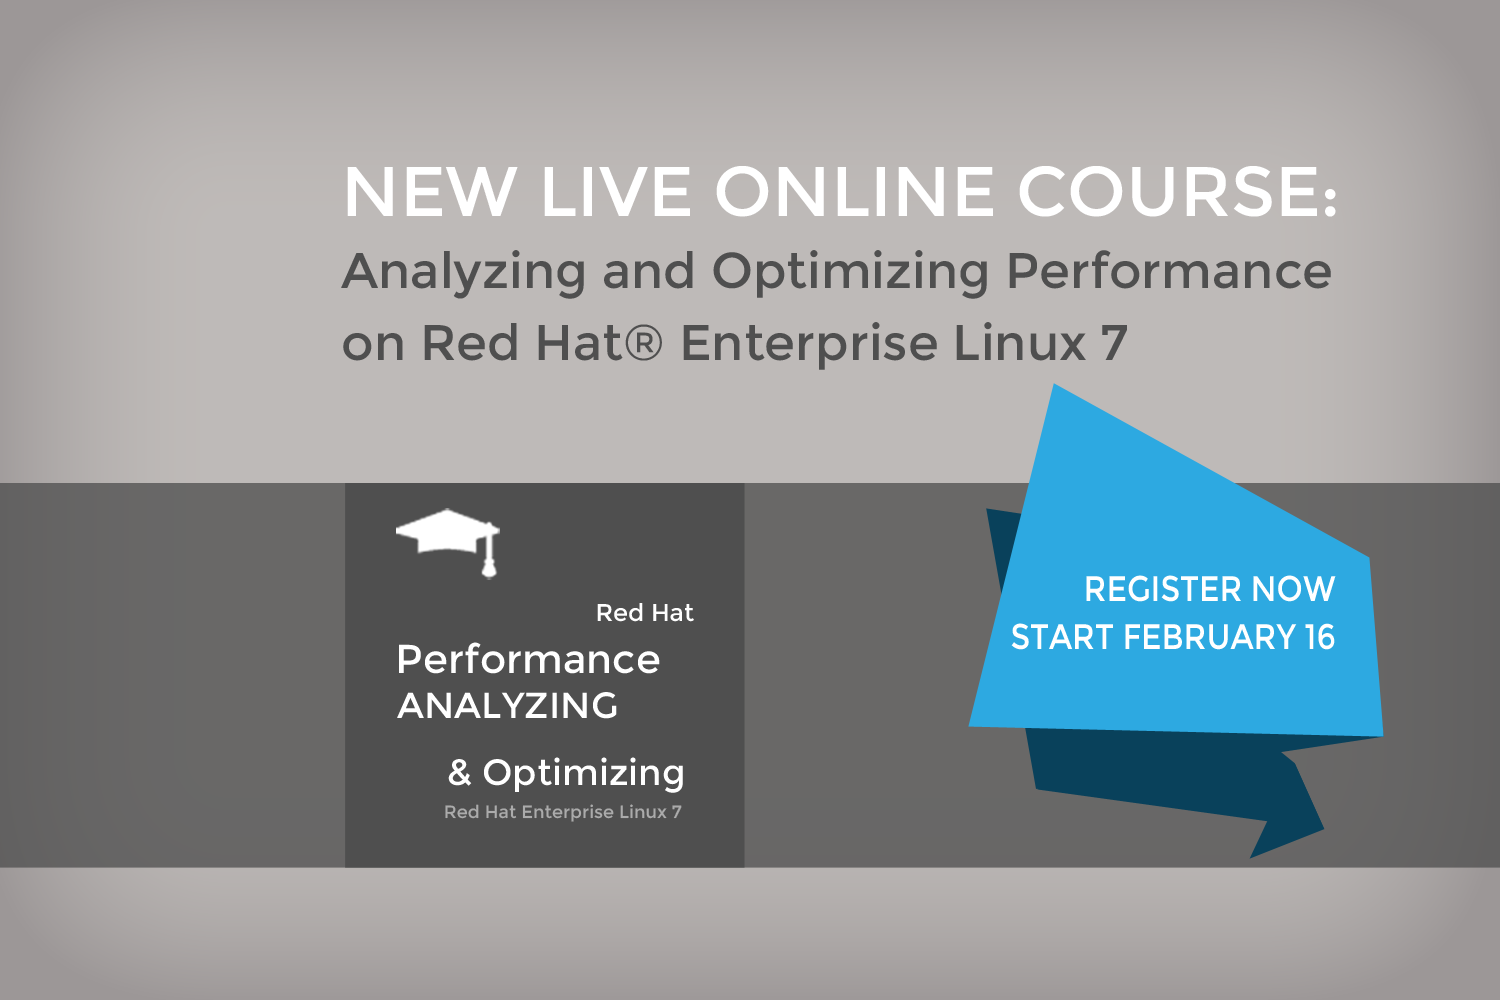 New LIVE online course: Analyzing and Optimizing Performance on Red Hat ® Enterprise Linux 7